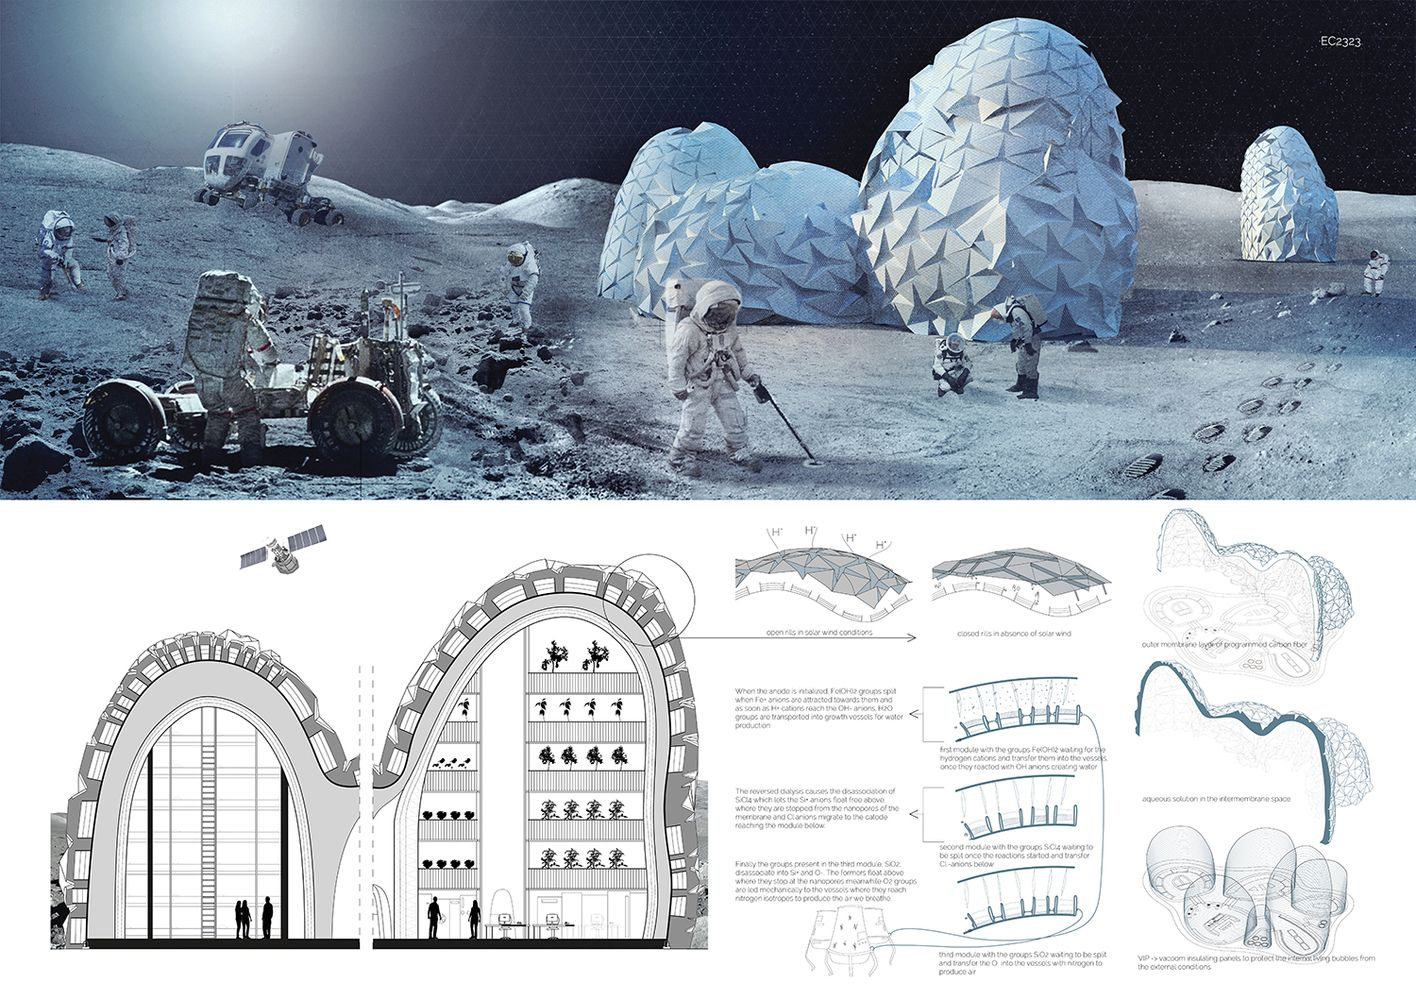 Gallery of 9 Visions for Lunar Colonies Selected as Winners in Moontopia Competition  1 is part of architecture - Image 1 of 20 from gallery of 9 Visions for Lunar Colonies Selected as Winners in Moontopia Competition  Moontopia Competition Winner  TEST LAB  Image Courtesy of ElevenMagazine com